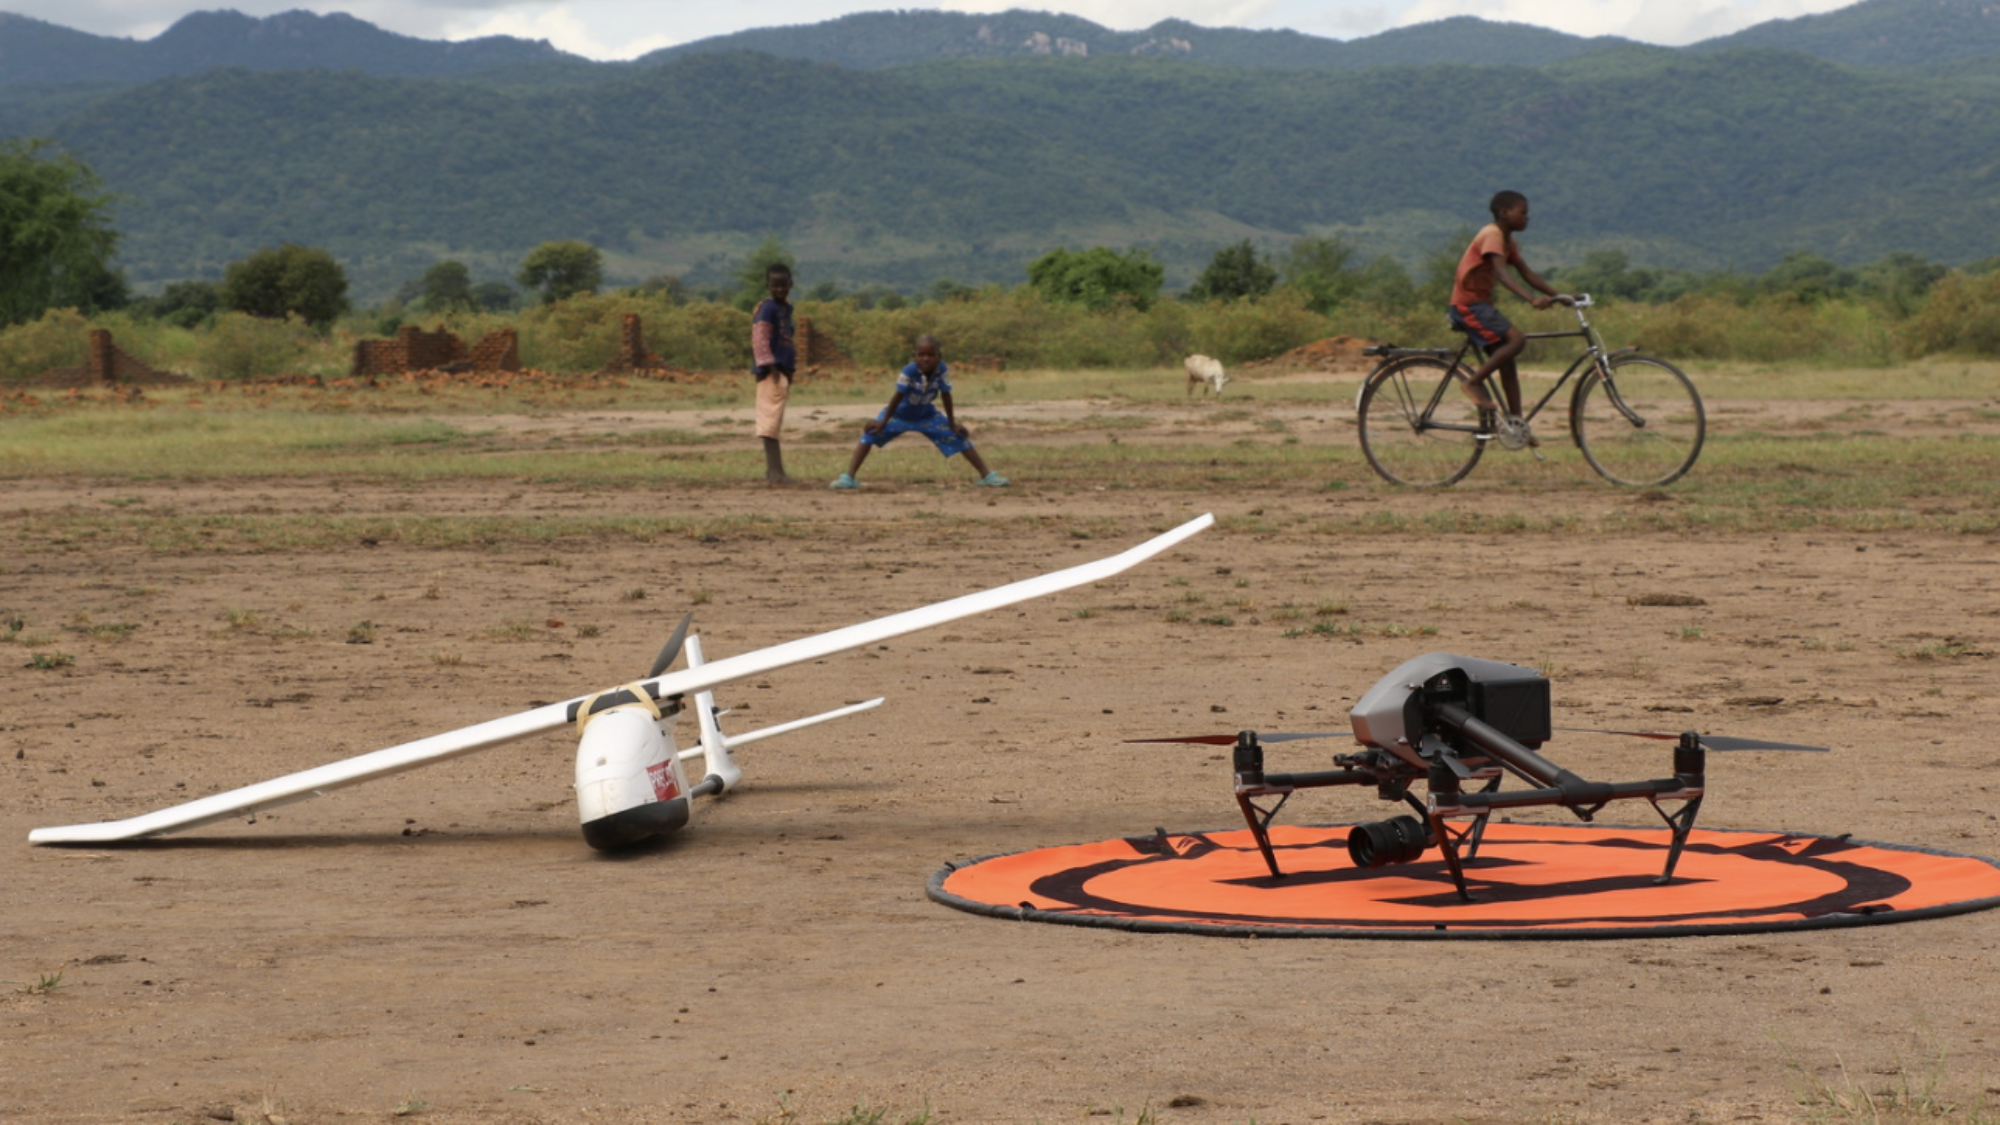 Two small drones sit rest on the dirt against the backdrop of mountains.